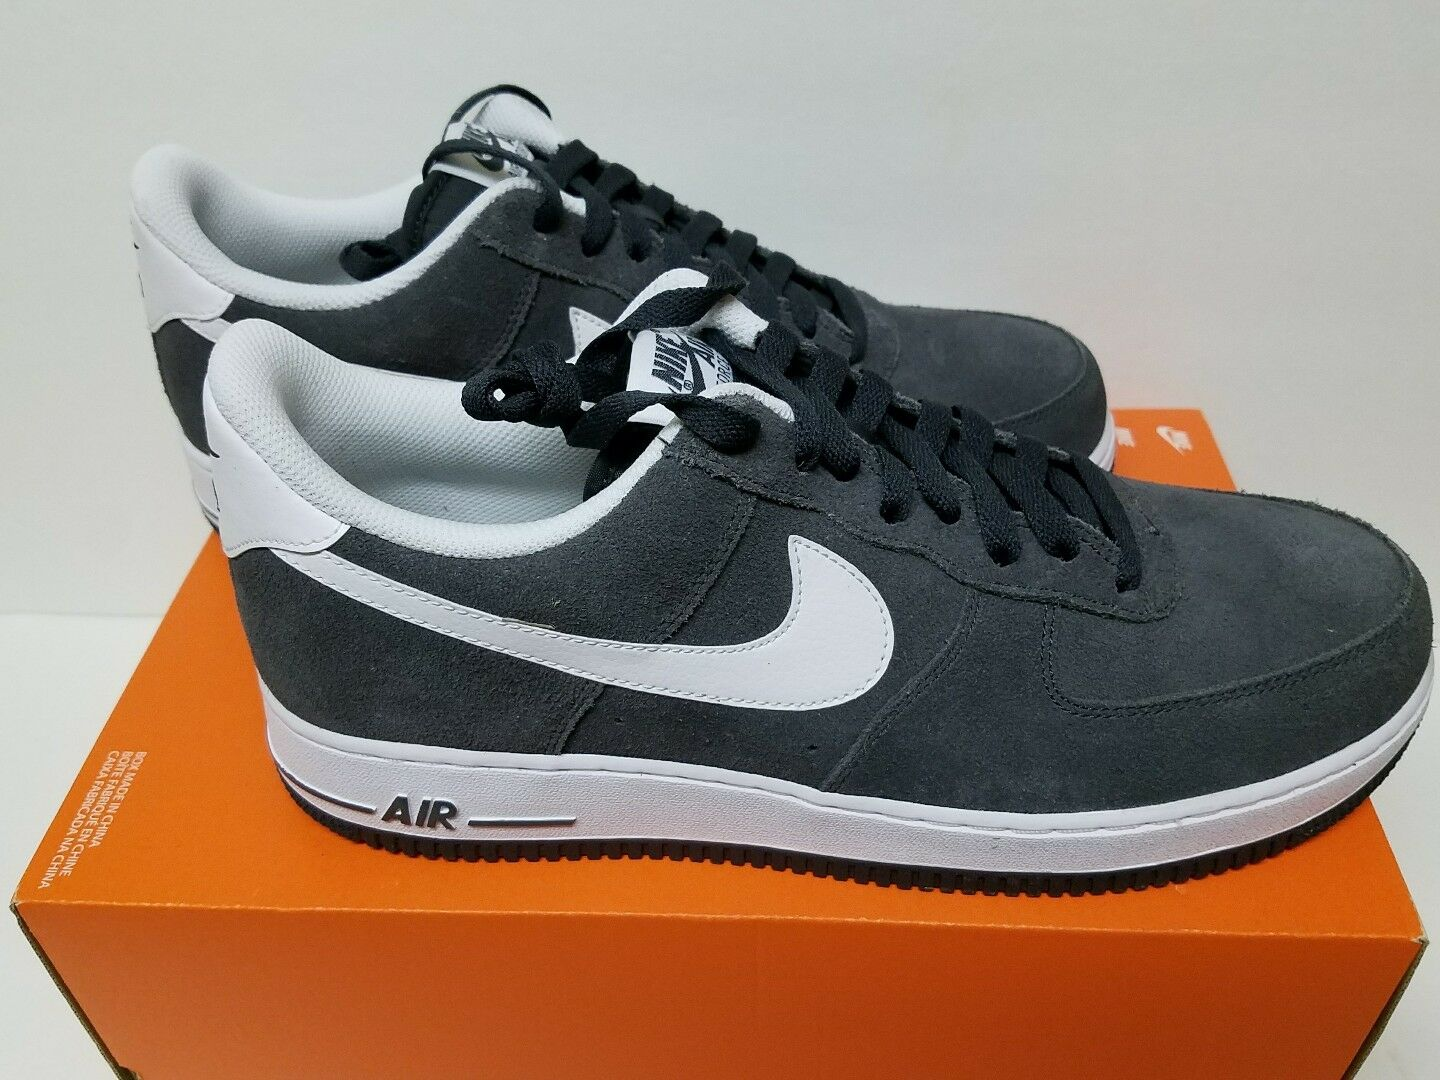 Brand New Nike Air Force 1 '07 Size 10.5 Sneakers & 11.5 Men's  Sneakers 10.5 [315122 067] 951978